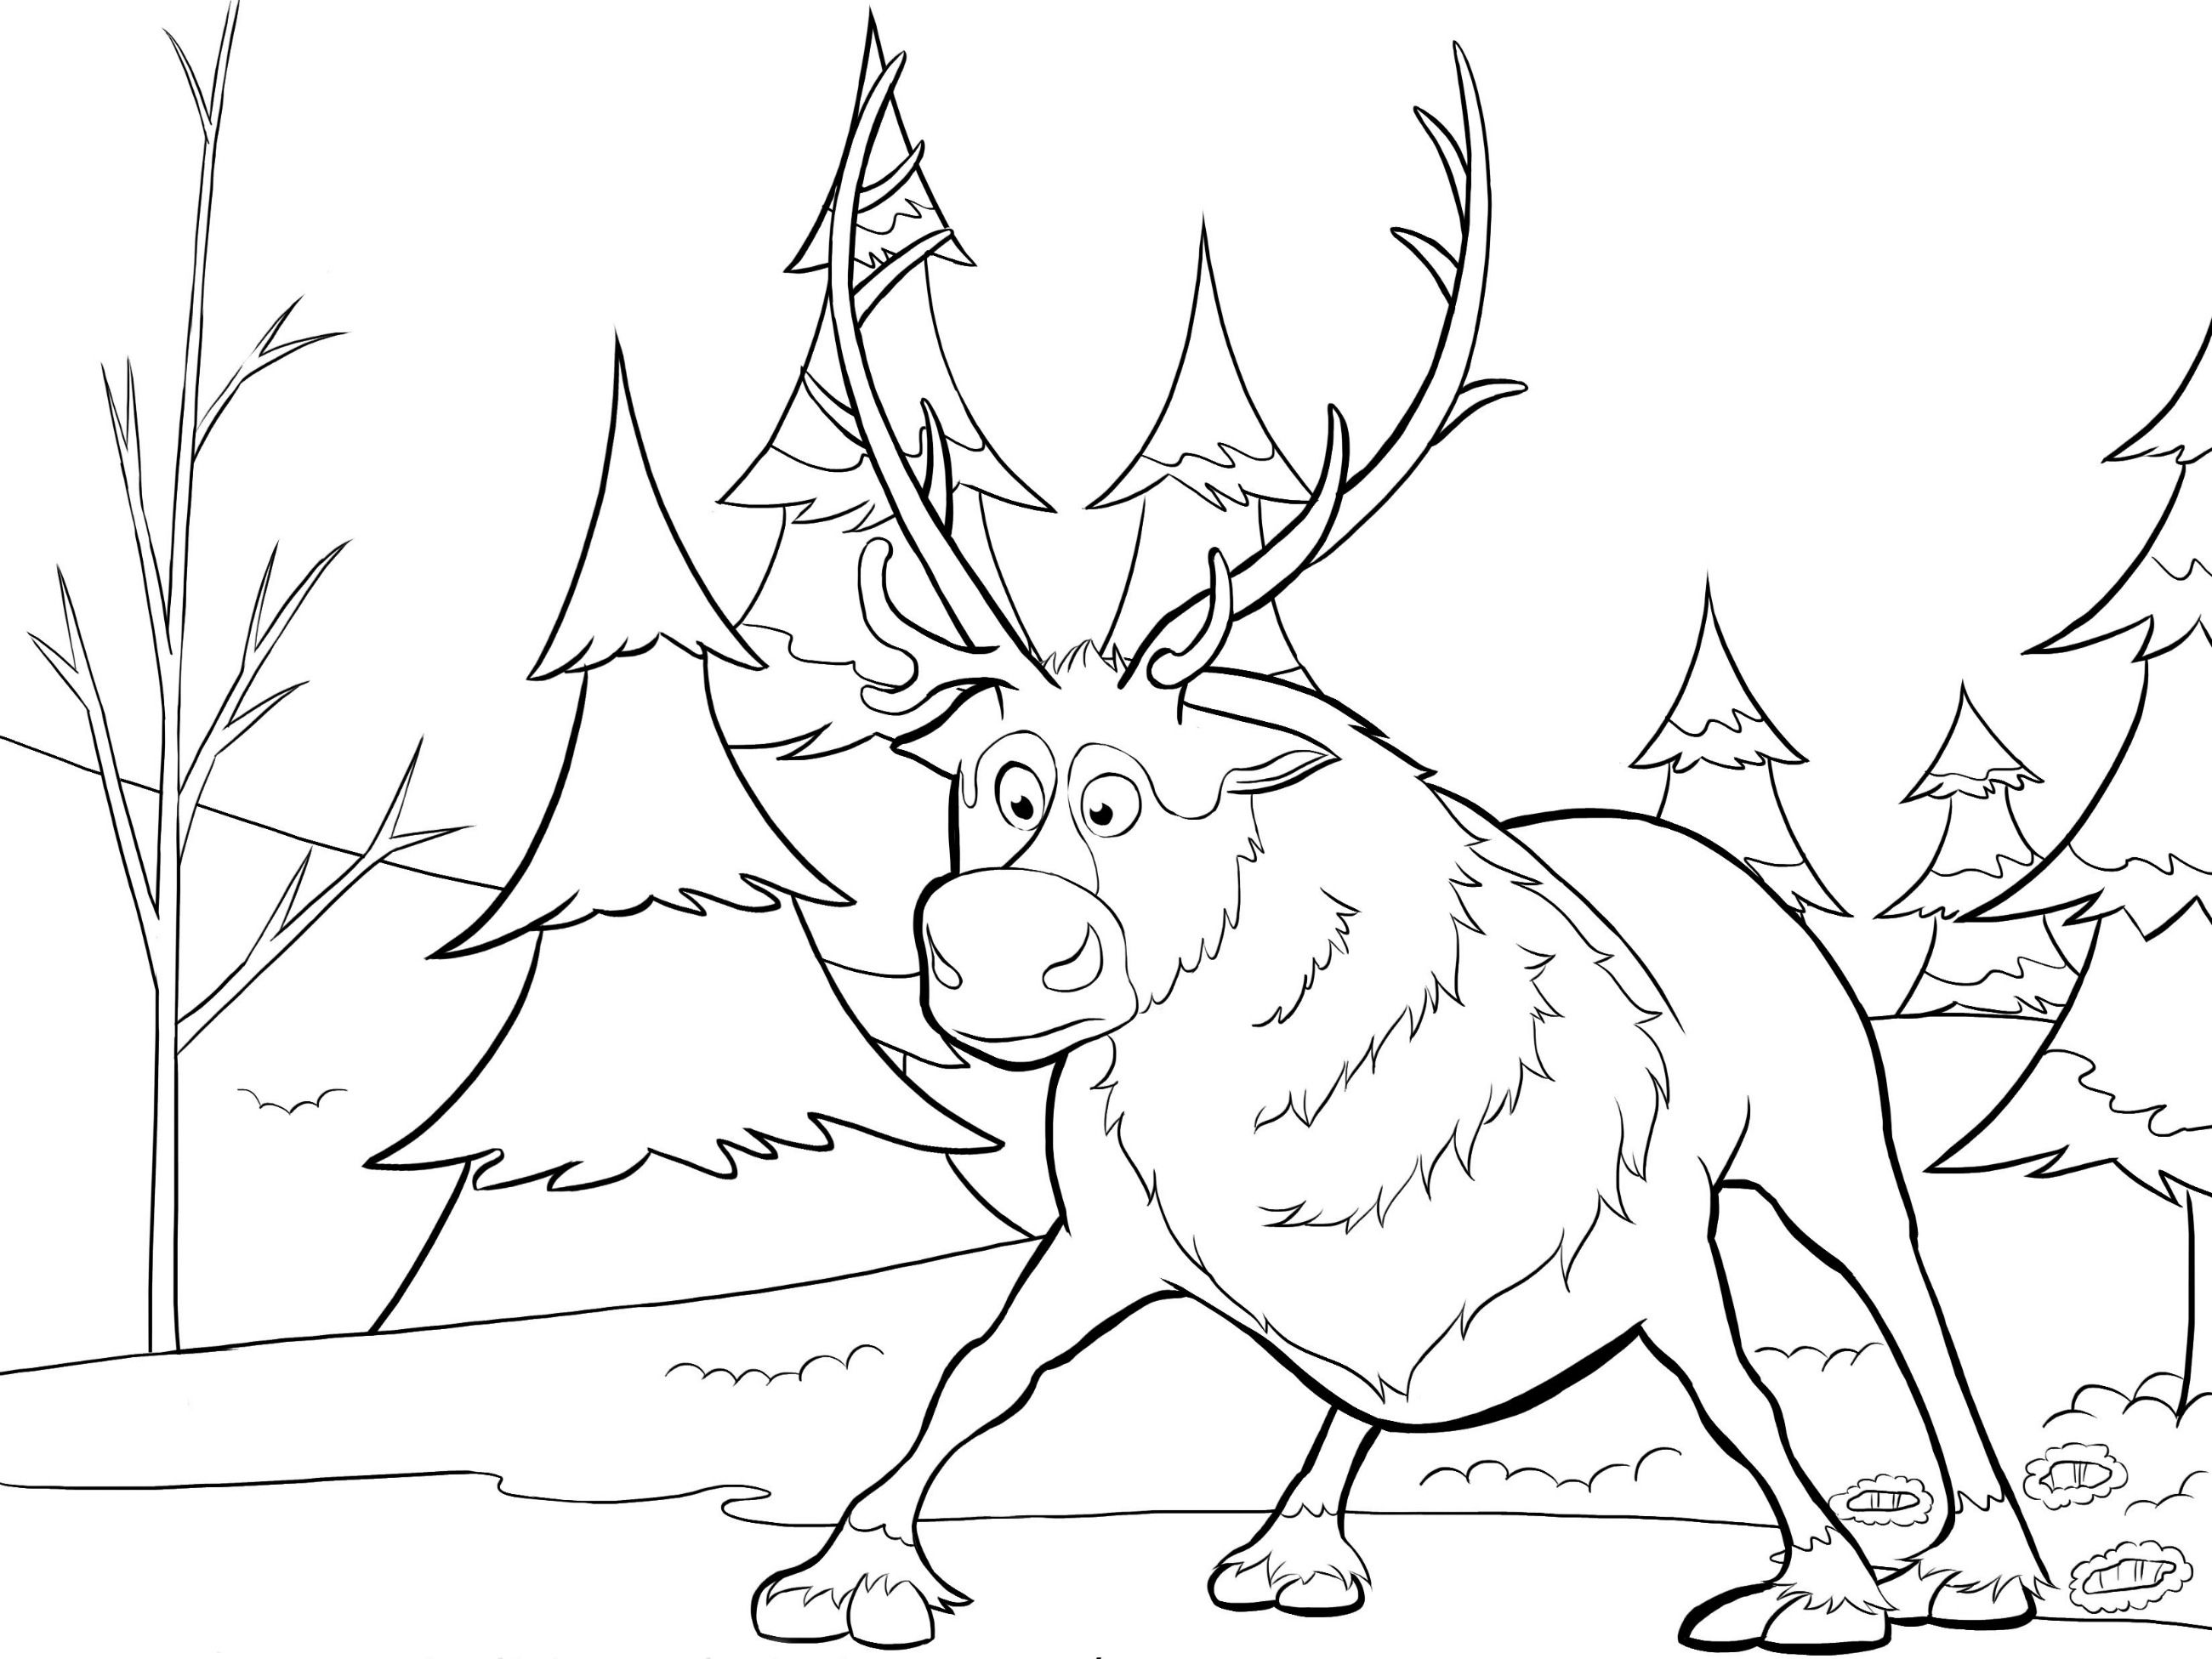 Frozen Coloring Pages Sven Free Online Printable Sheets For Kids Get The Latest Images Favorite